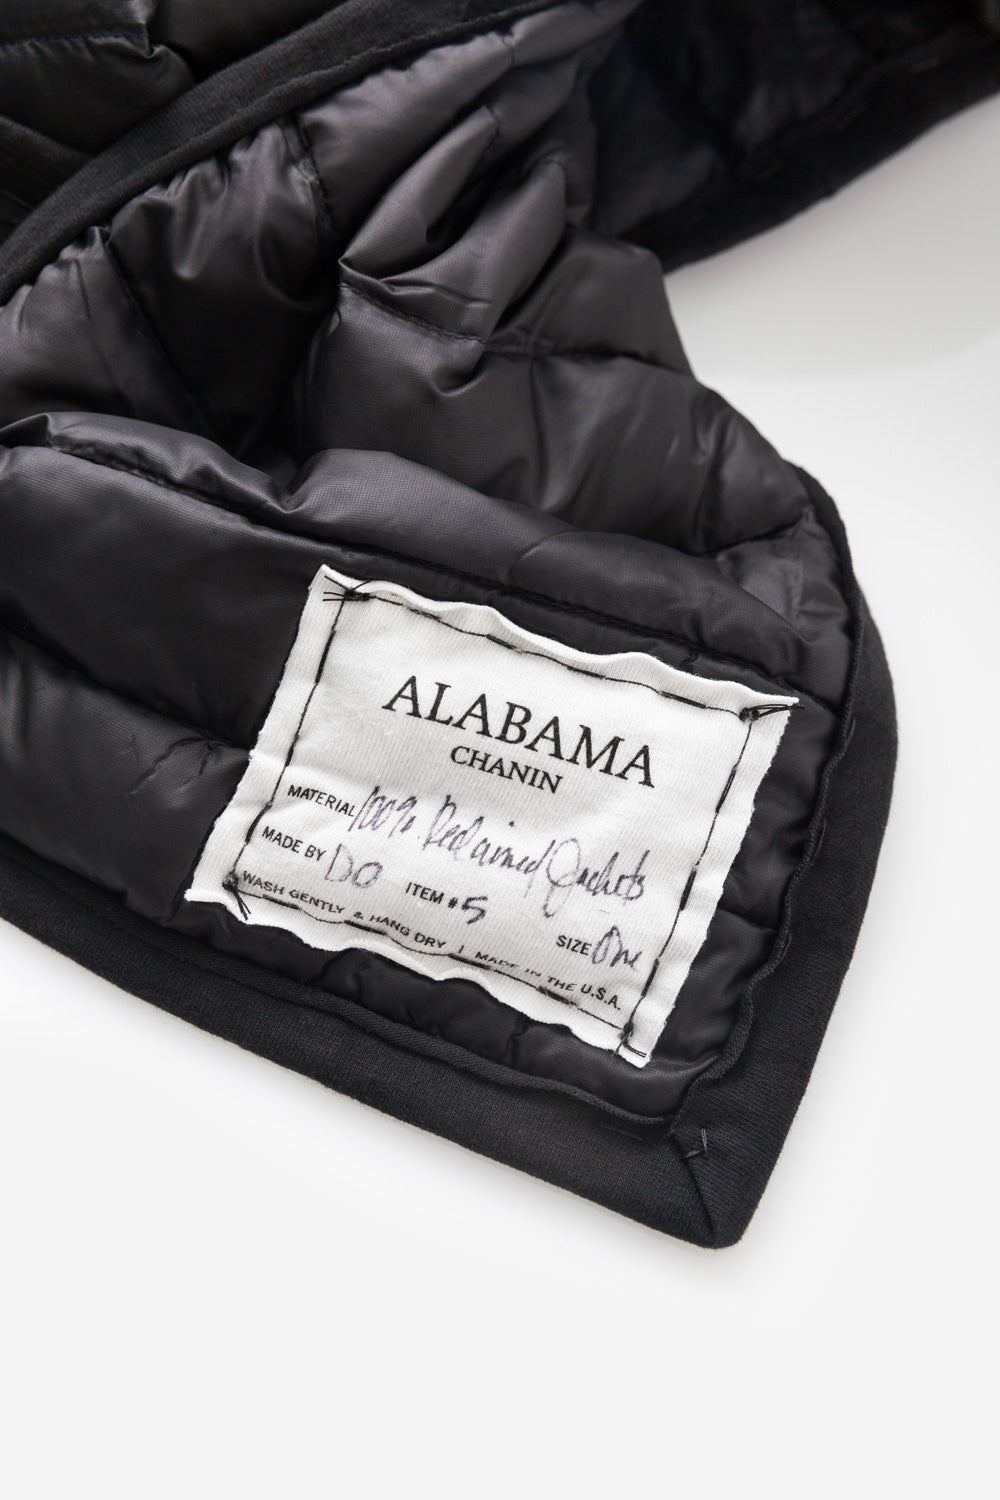 Alabama Chanin Hand-Sewn Reclaimed Down Scarf in Black Label Image